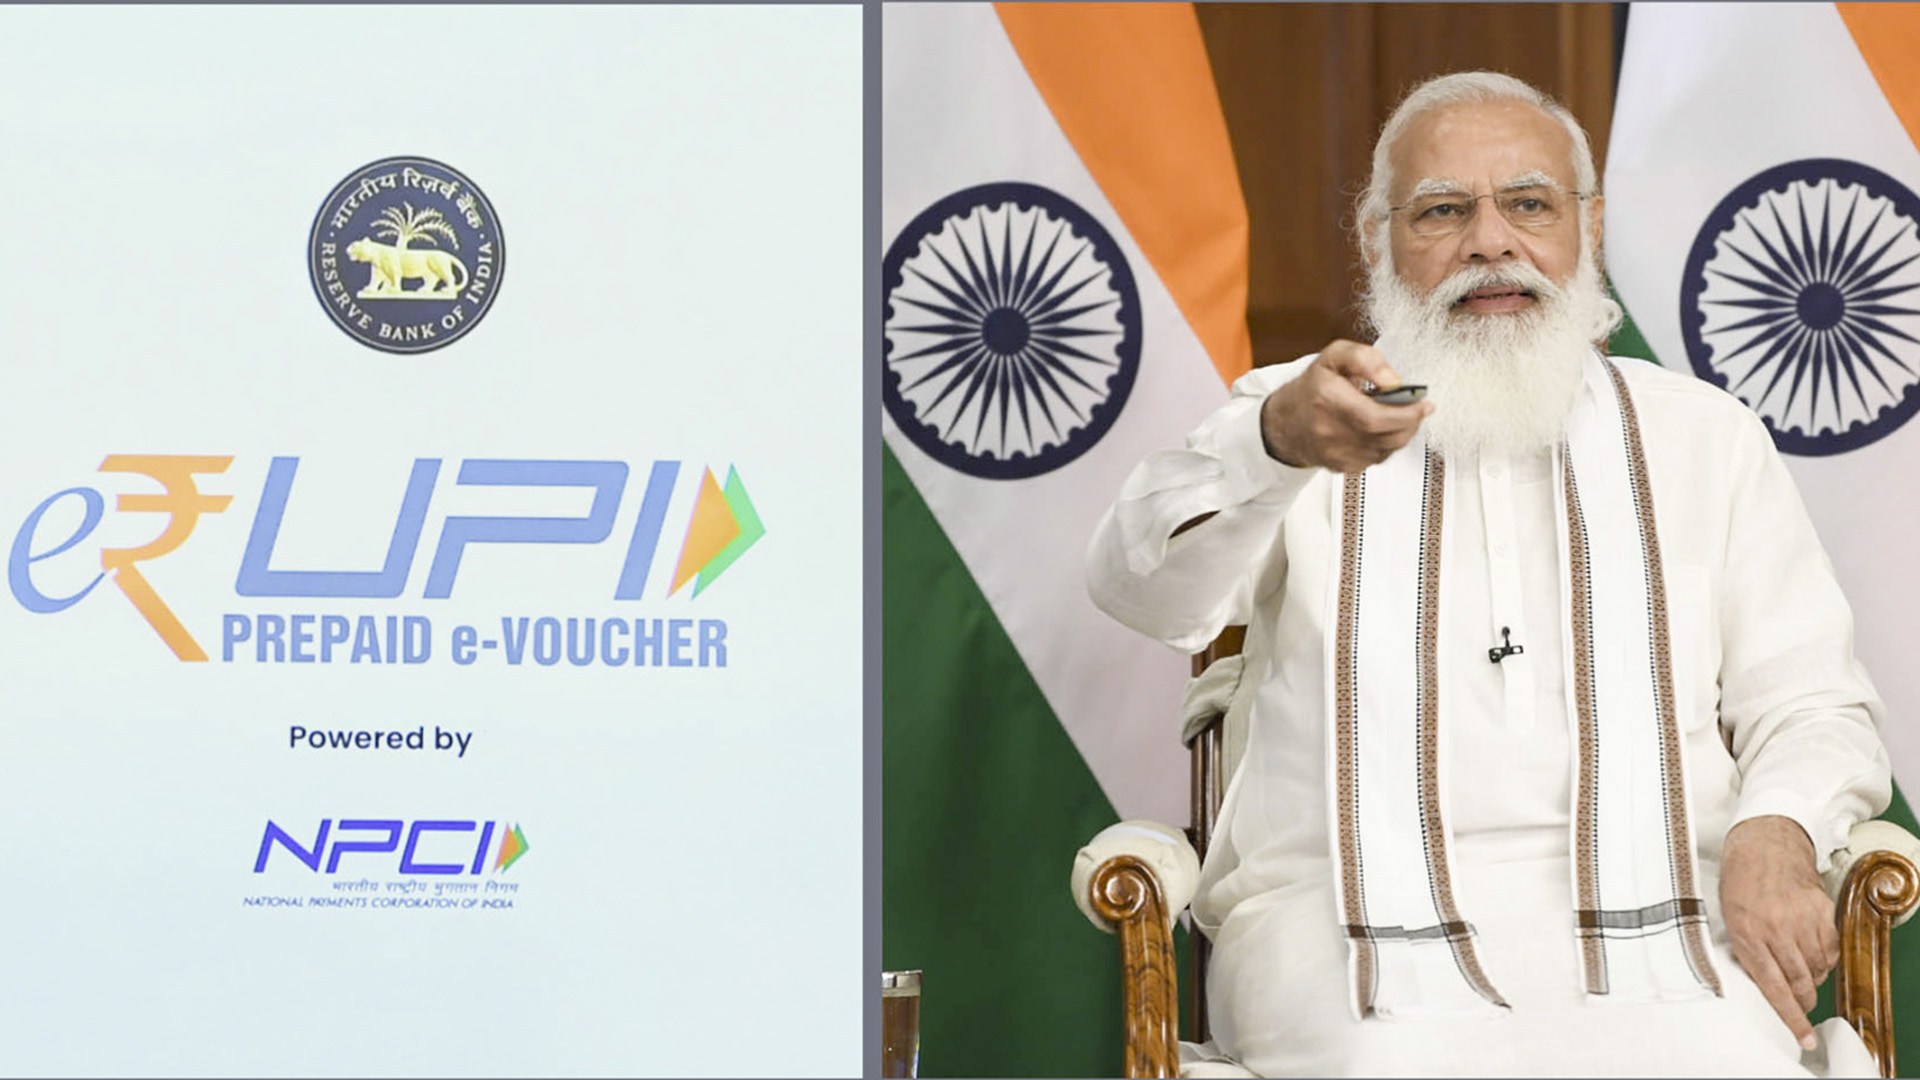 """India Launches Electronic Voucher """"E-RUPI"""" To Promote Digital Payment Solution"""